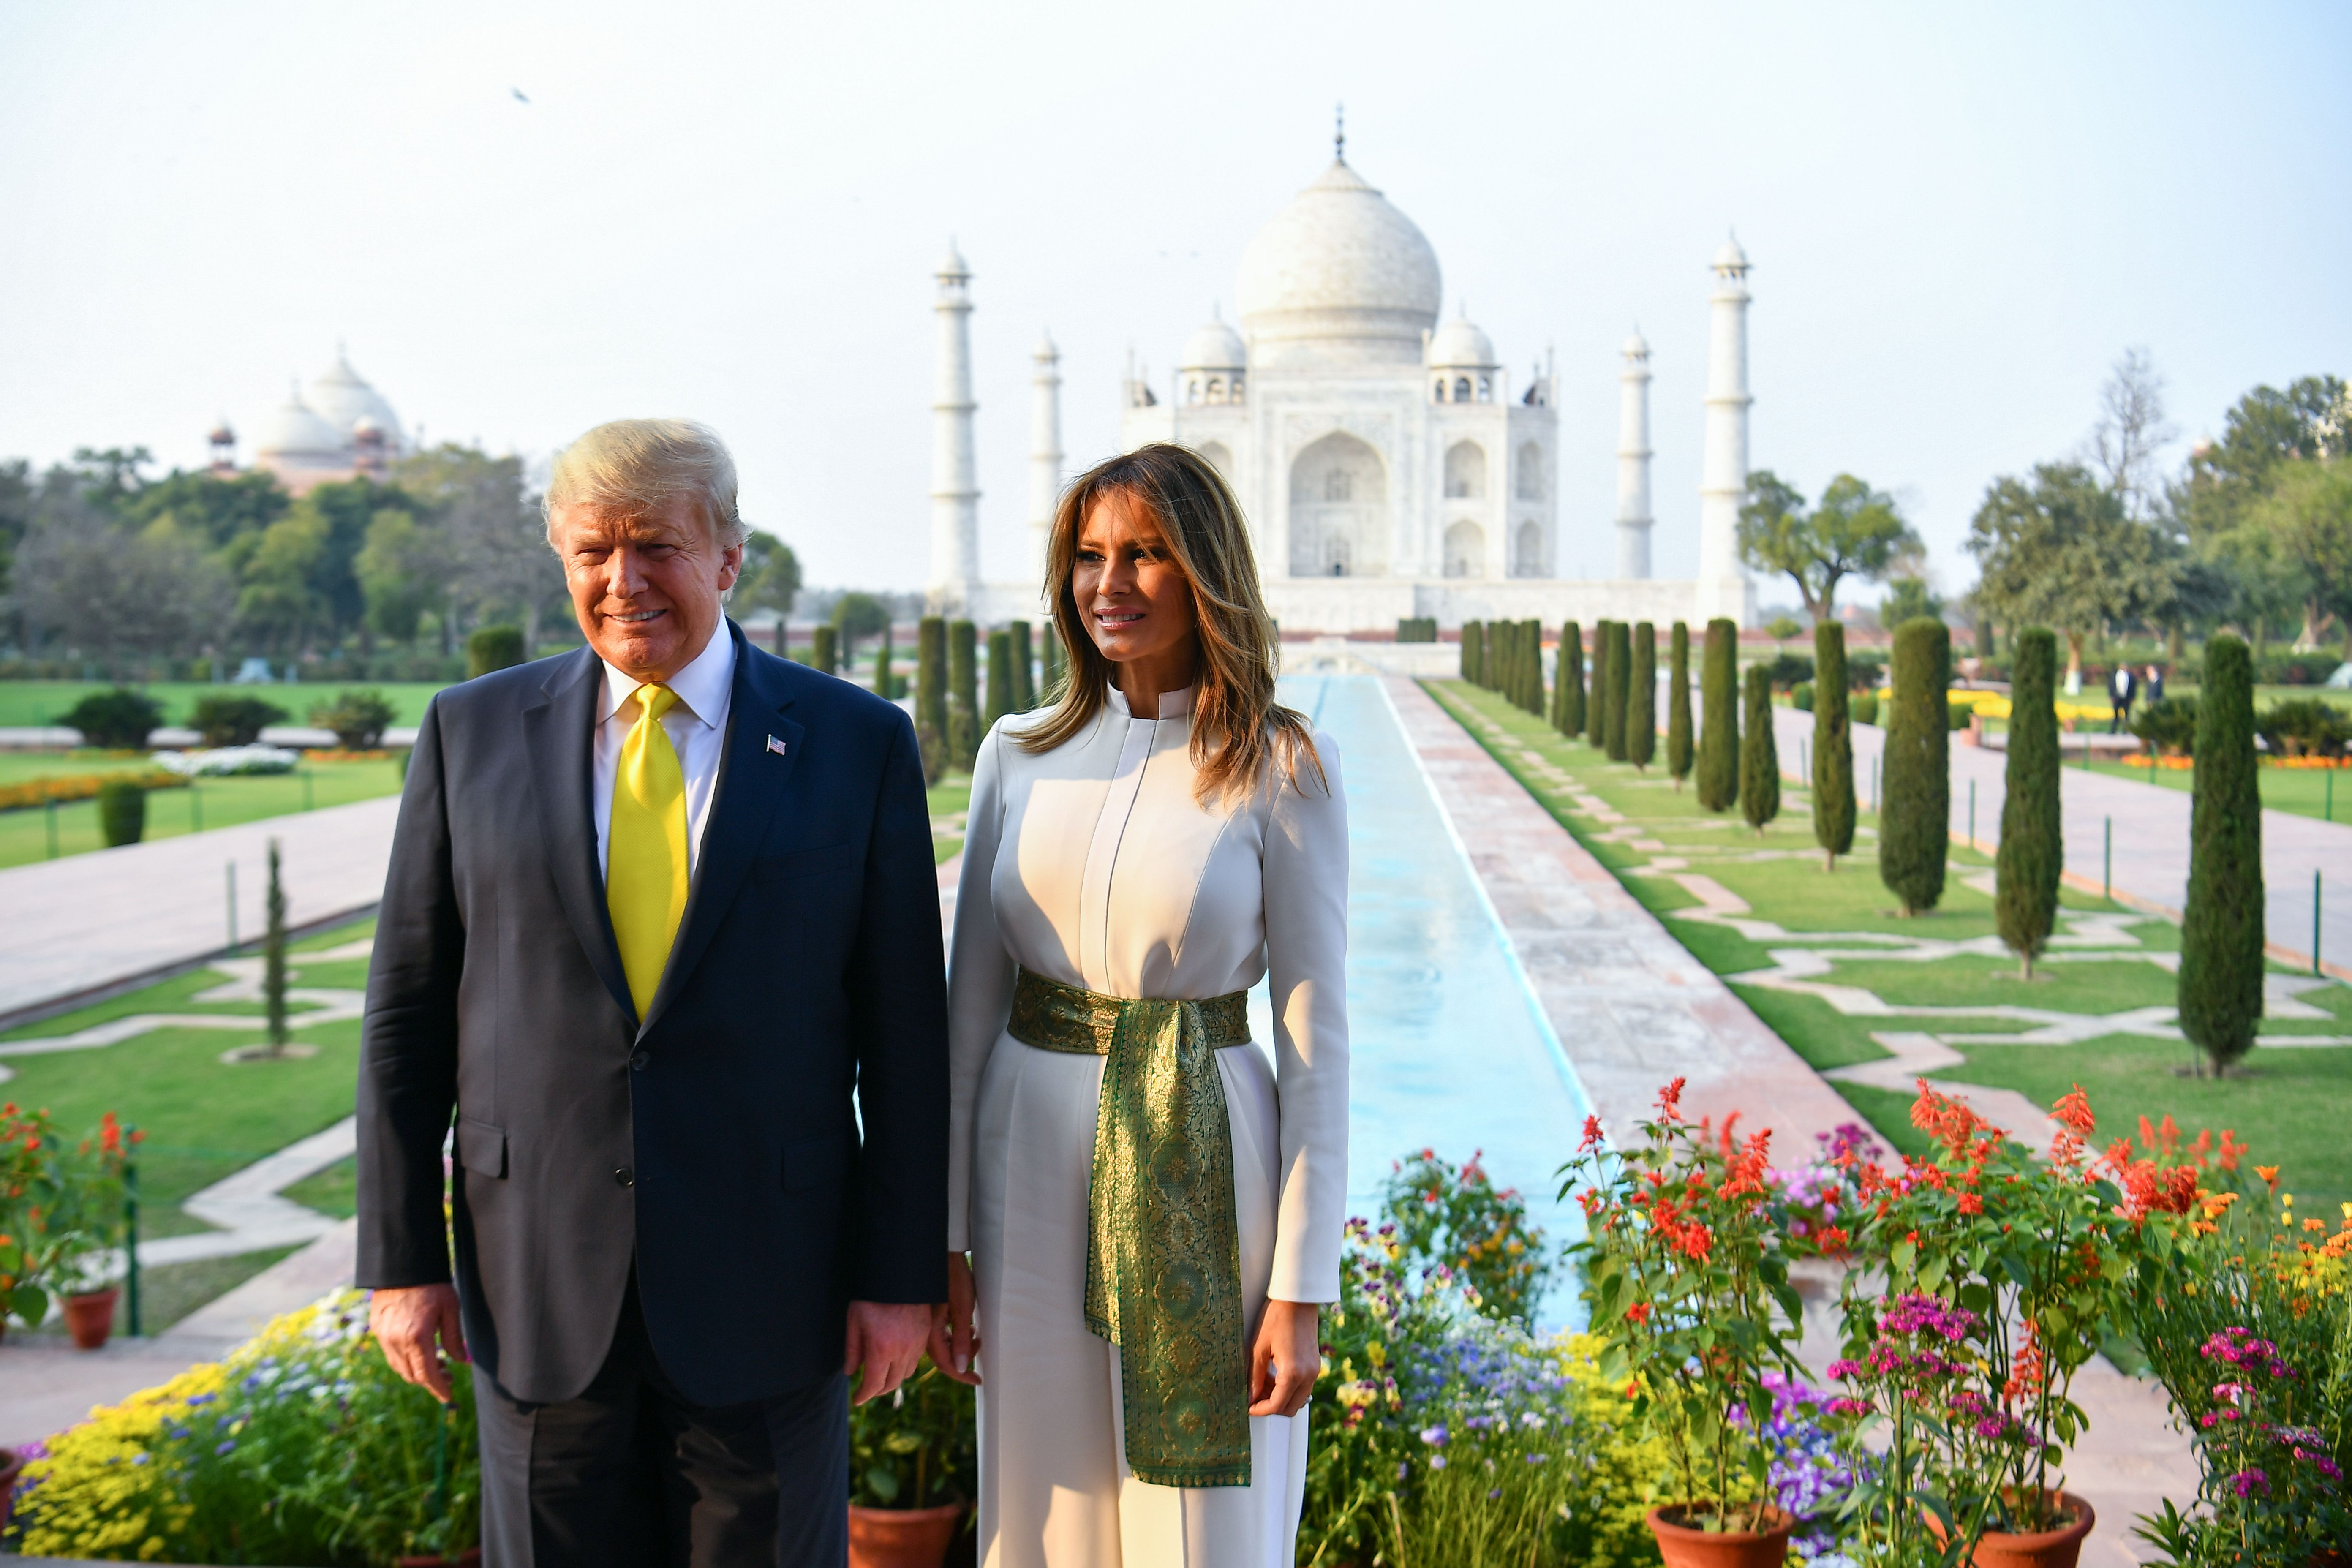 US President Donald Trump and First Lady Melania Trump pose as they visit the Taj Mahal in Agra on February 24, 2020. (MANDEL NGAN/AFP via Getty Images)